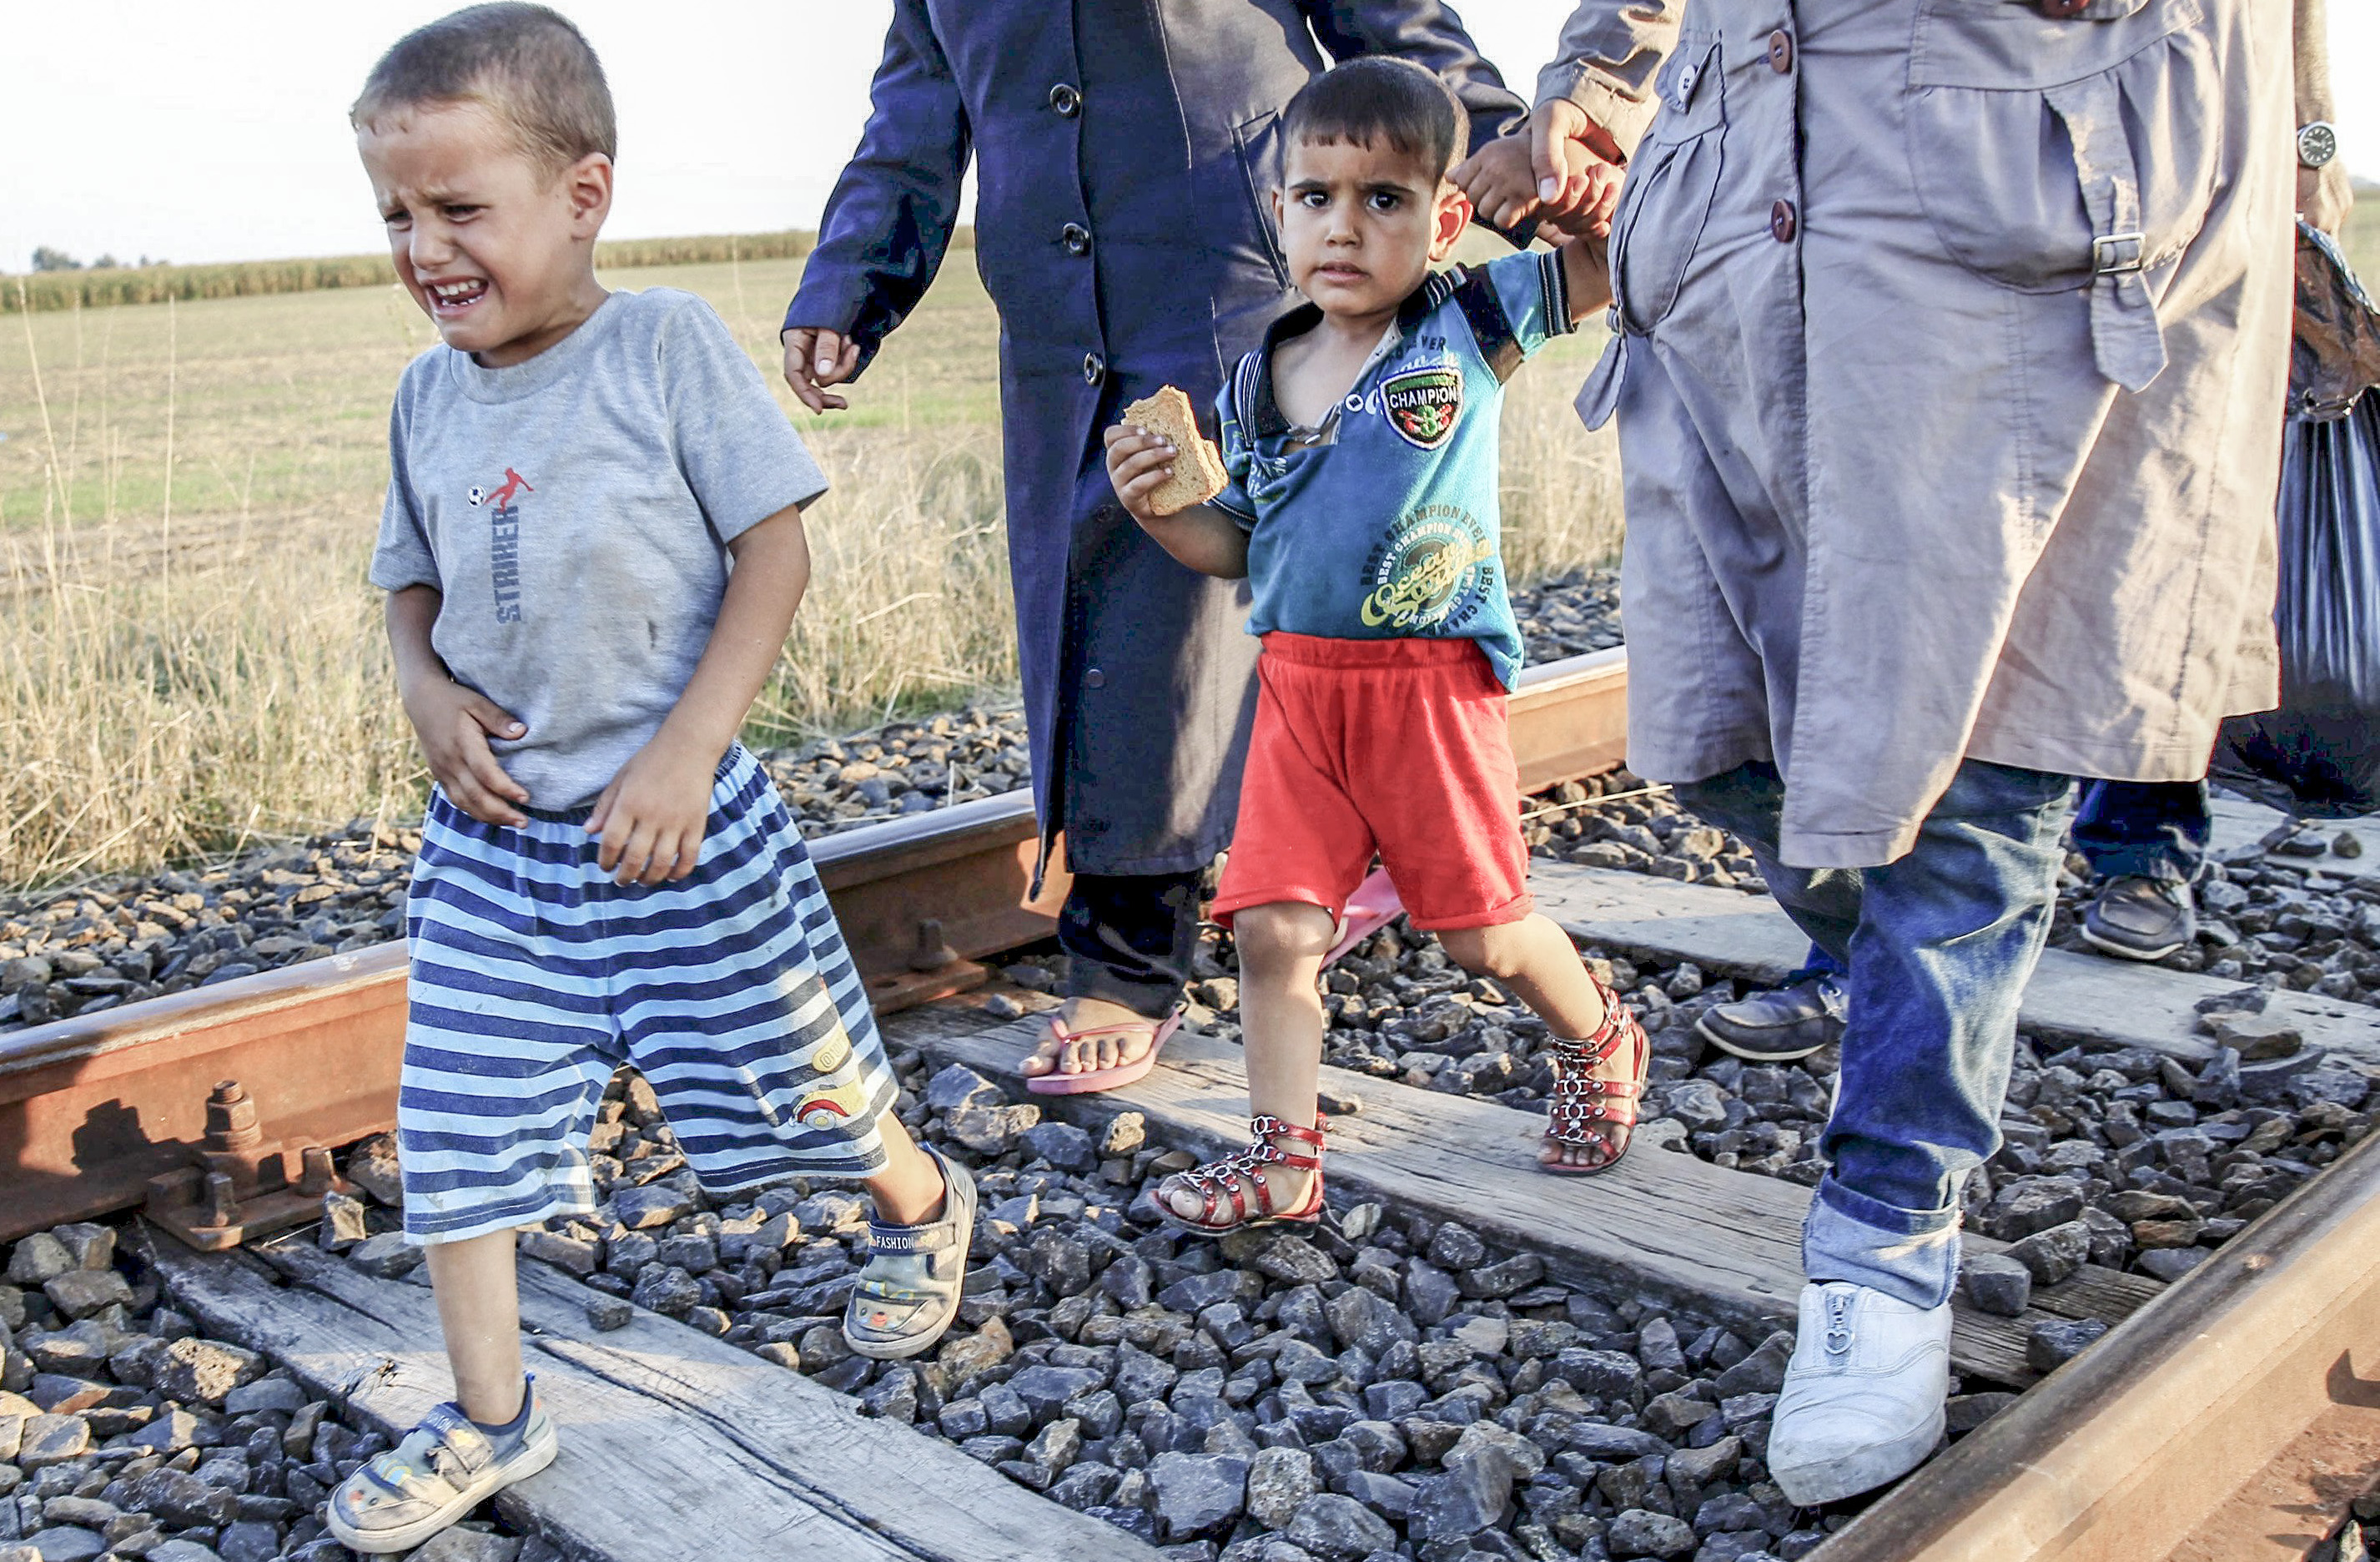 A migrant boy cries as he walks on a railway track after he crossed the Hungarian-Serbian border near Roszke, Hungary August 27, 2015.